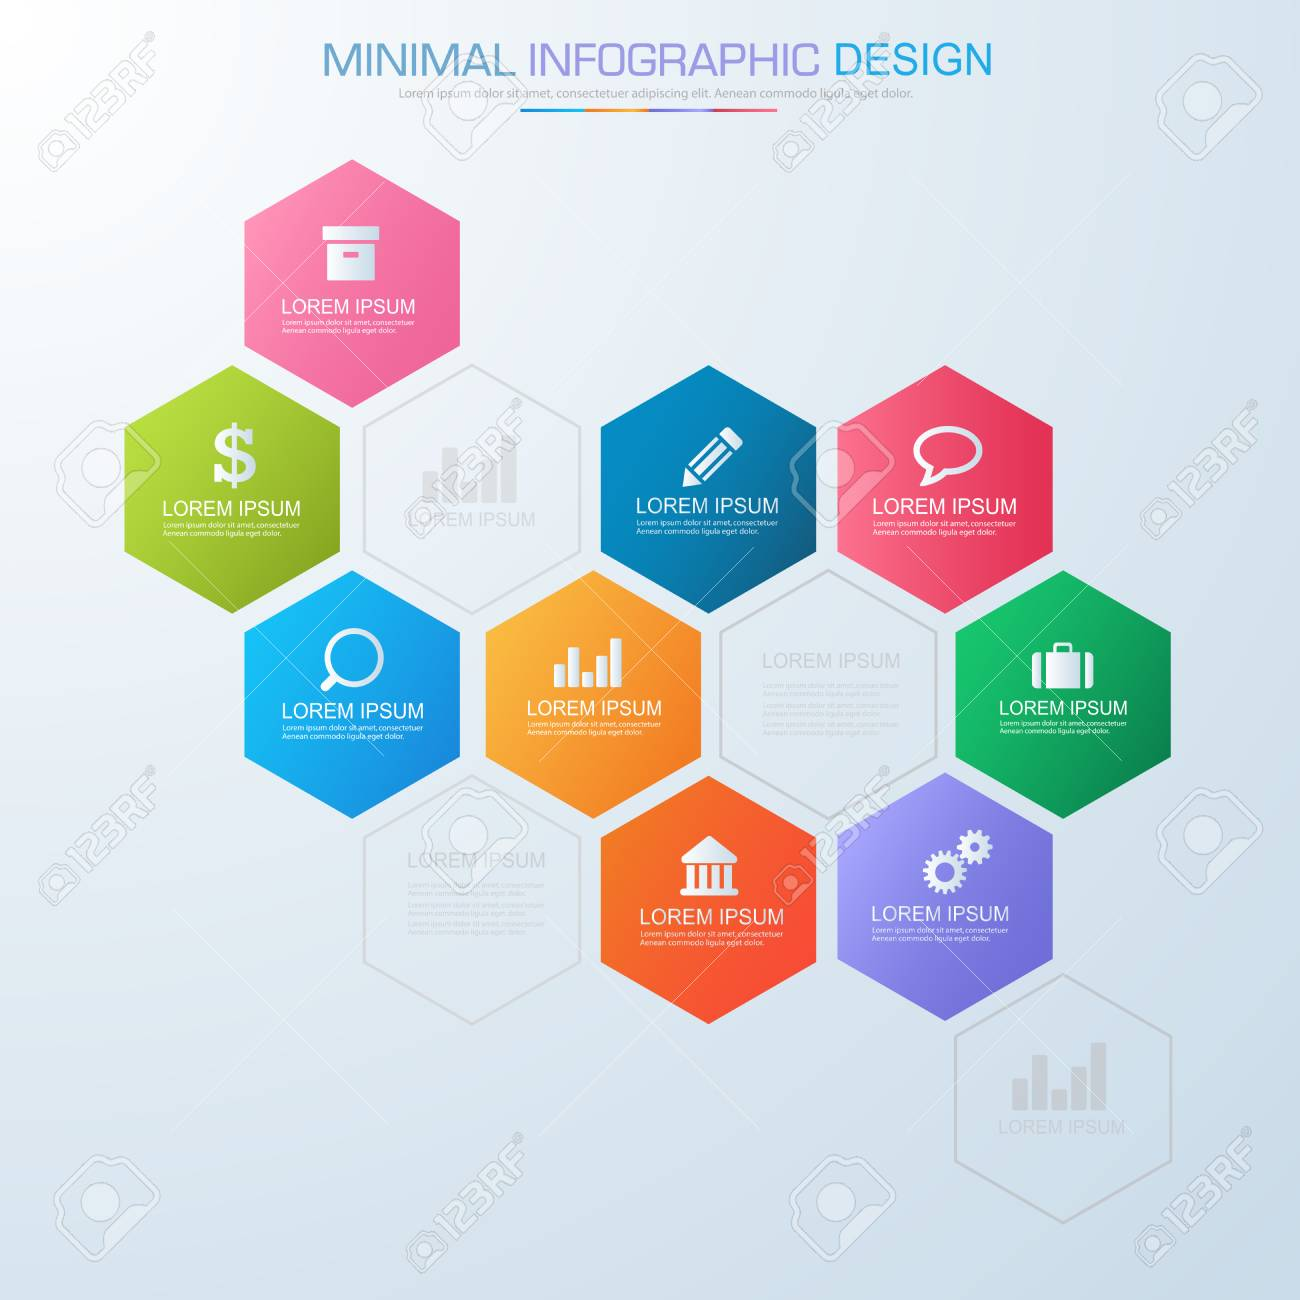 Infographic elements with business icon on full color background banco de imagens infographic elements with business icon on full color background process or steps and options workflow diagramsvector design element ccuart Image collections